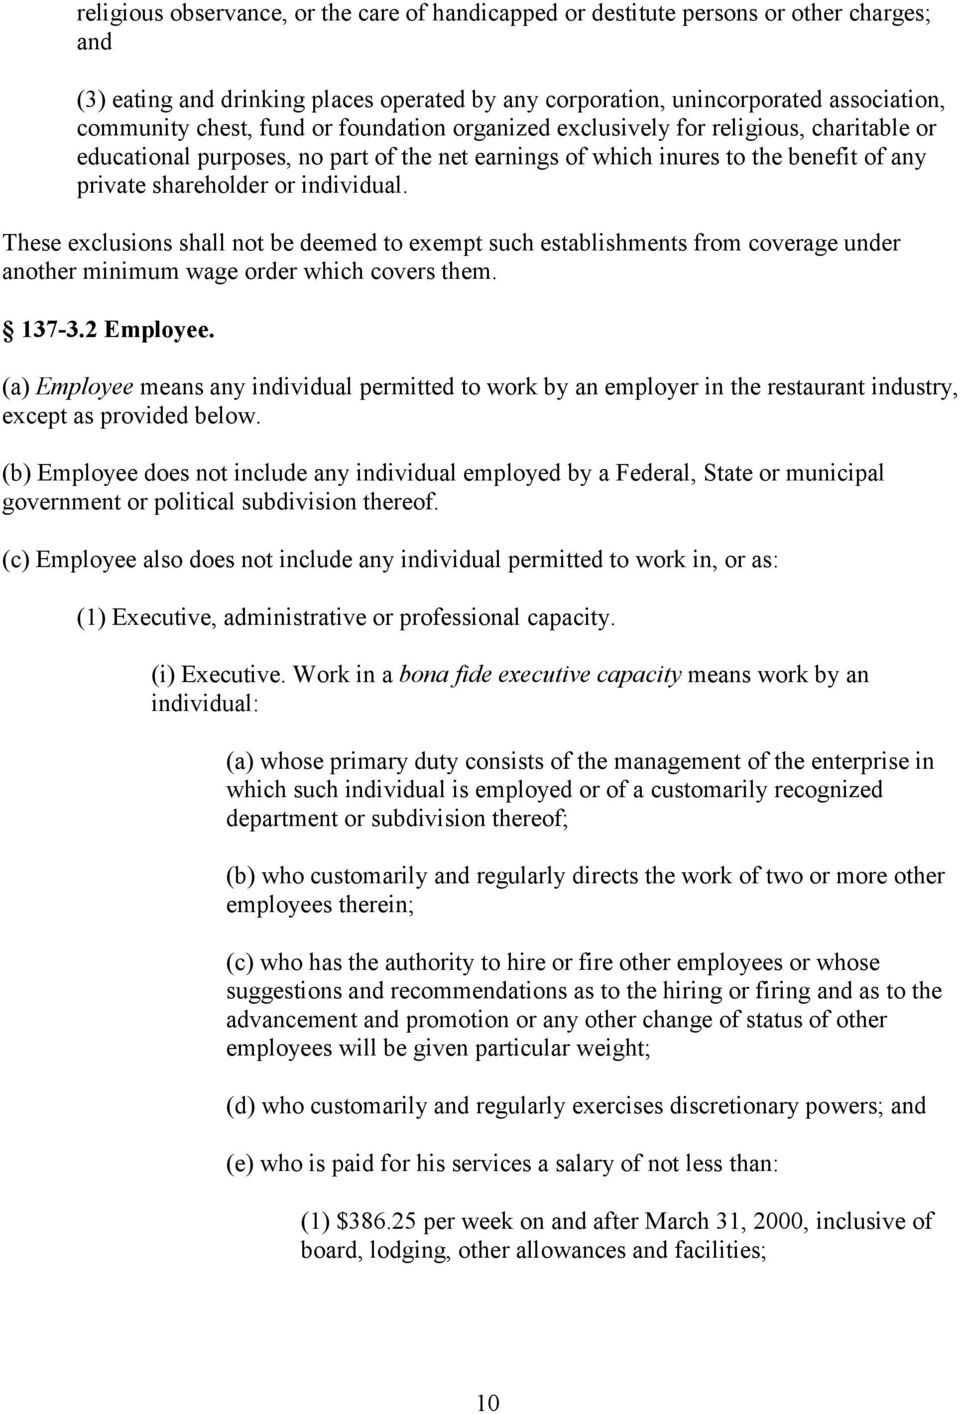 These exclusions shall not be deemed to exempt such establishments from coverage under another minimum wage order which covers them. 137-3.2 Employee.